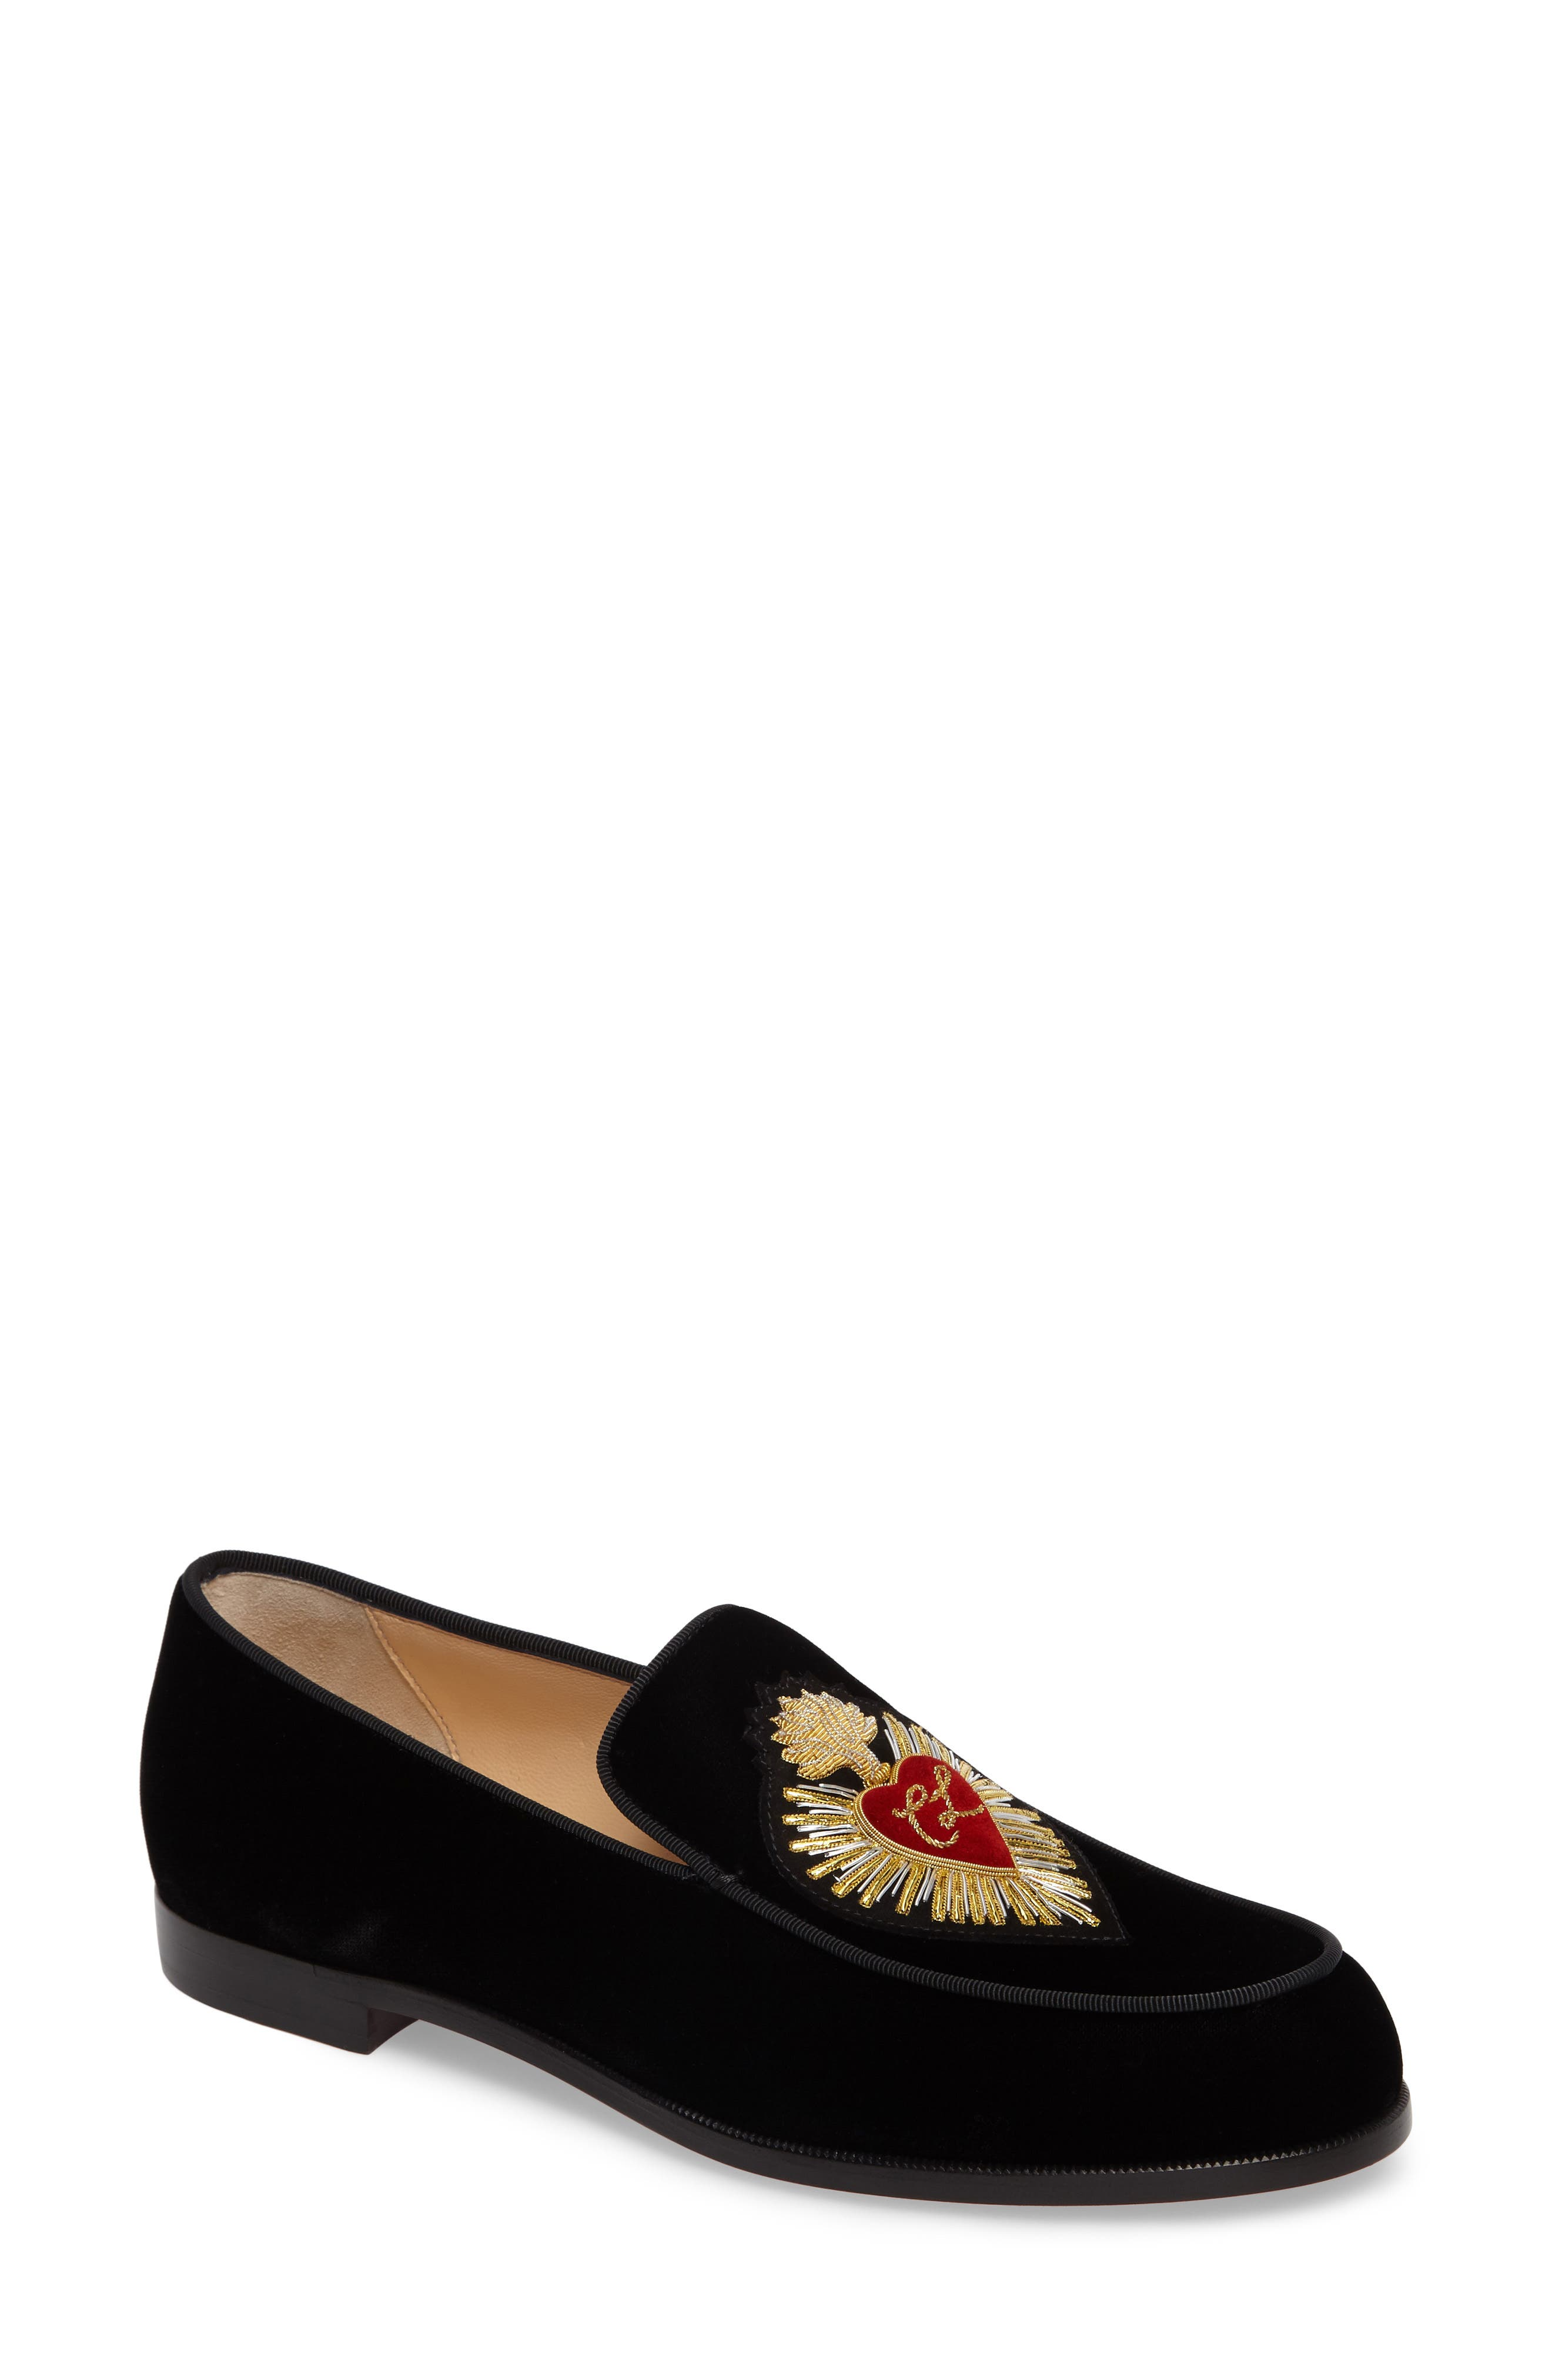 Perou Corazon Loafer,                             Alternate thumbnail 2, color,                             001